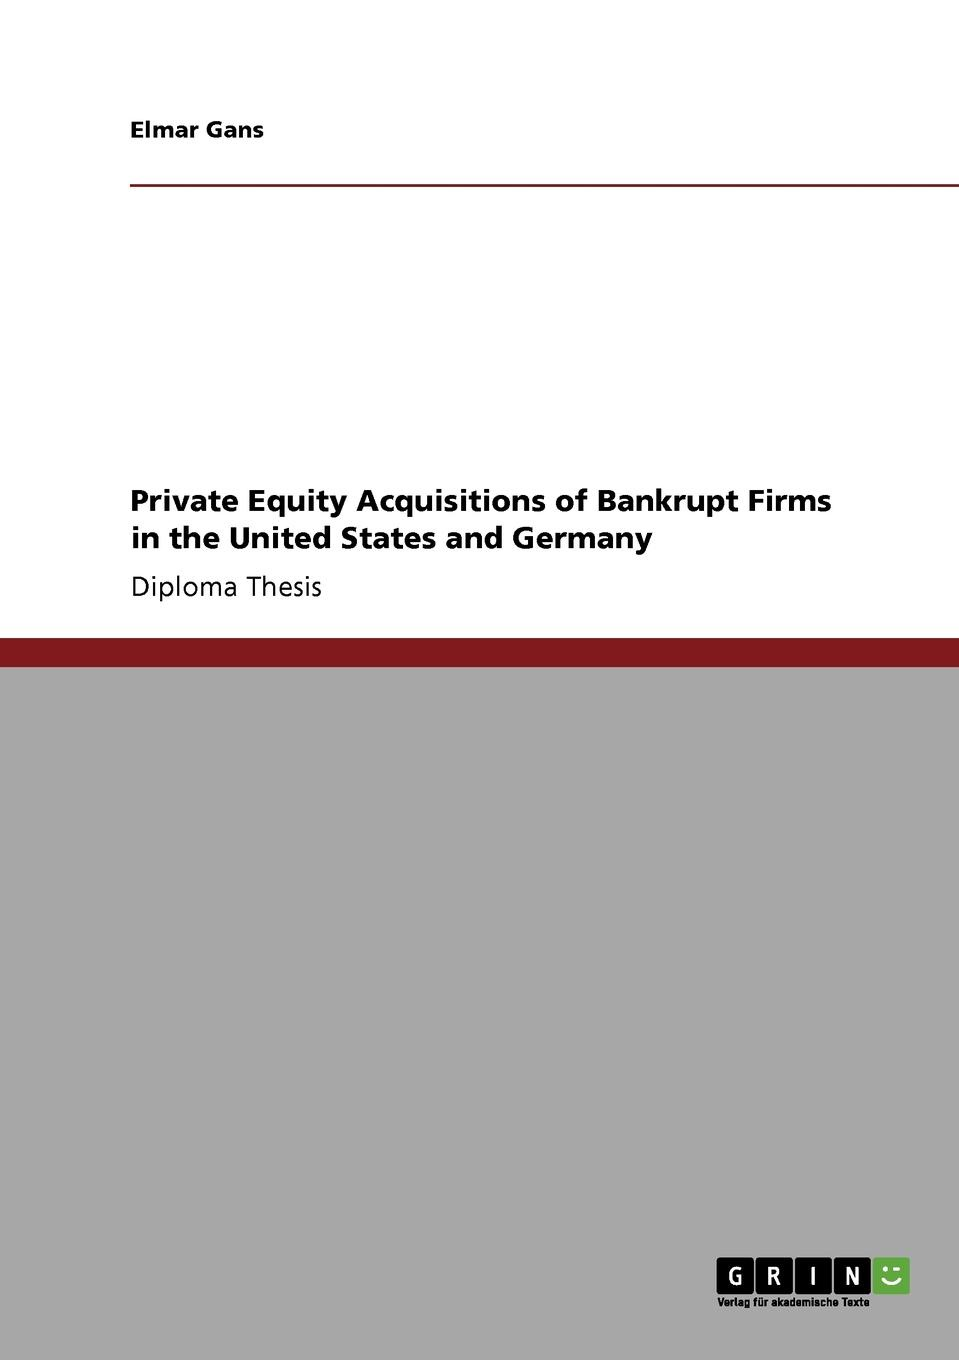 Elmar Gans Private Equity Acquisitions of Bankrupt Firms in the United States and Germany